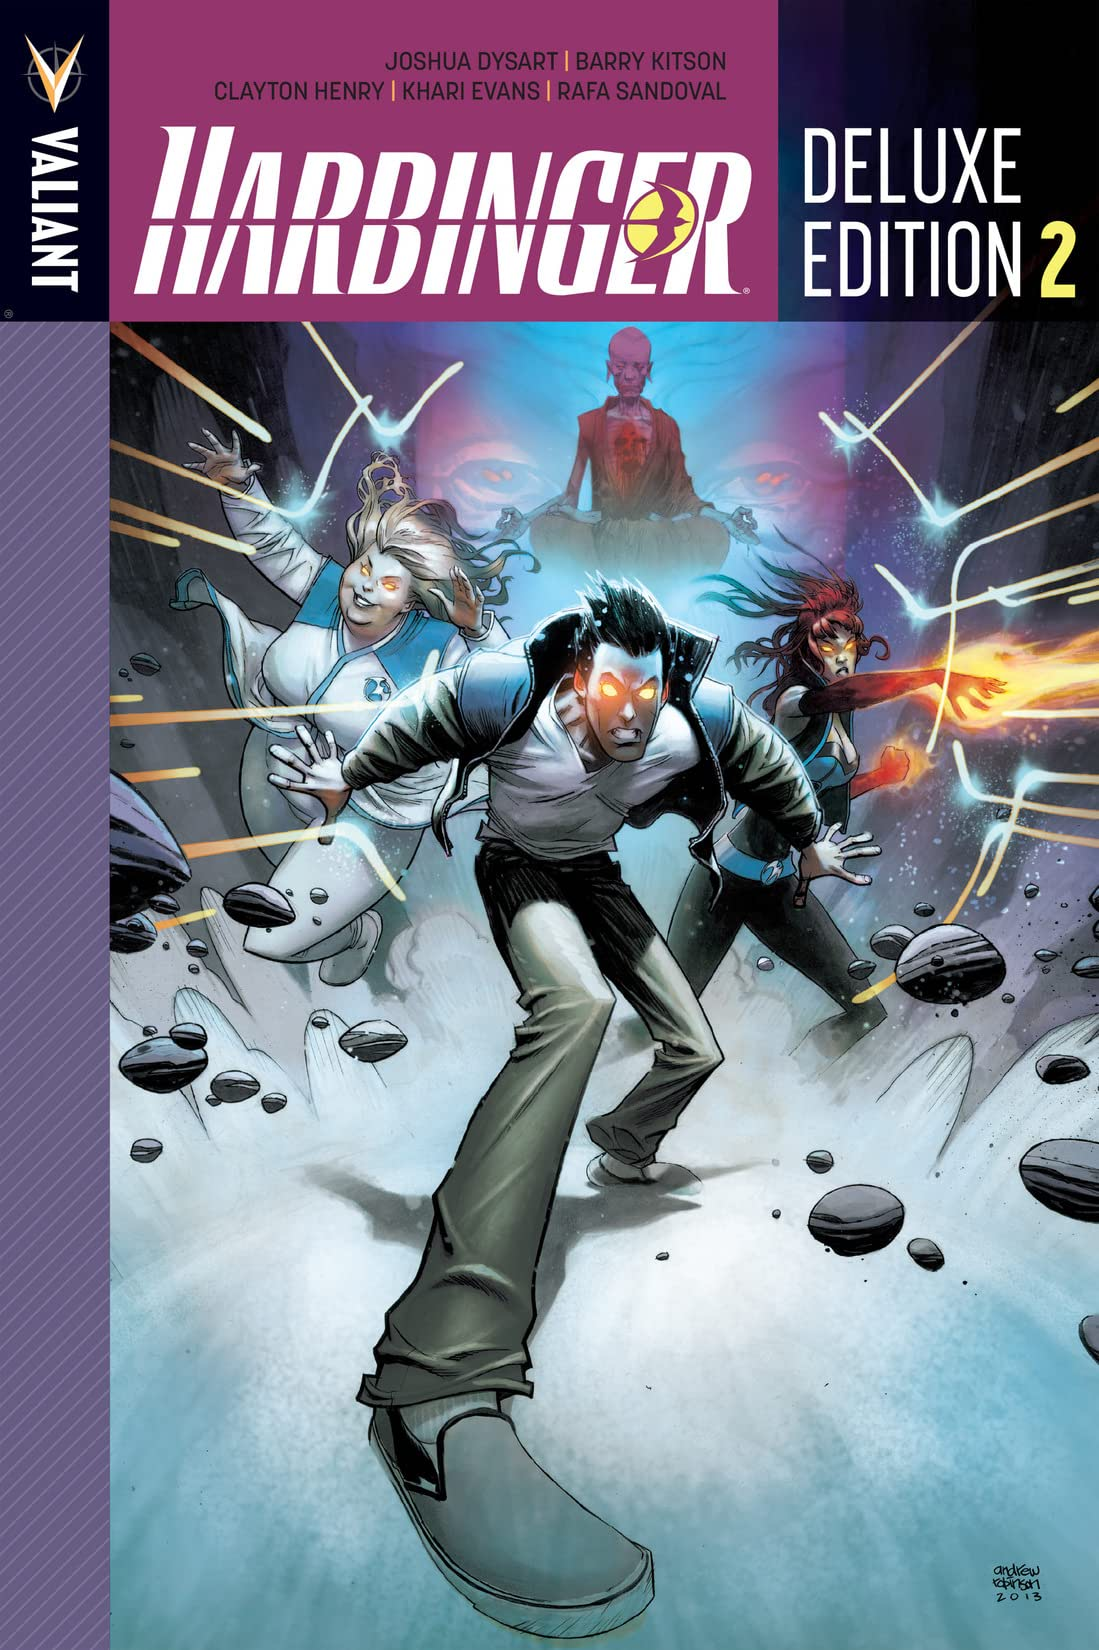 Harbinger Deluxe Edition Vol. 2